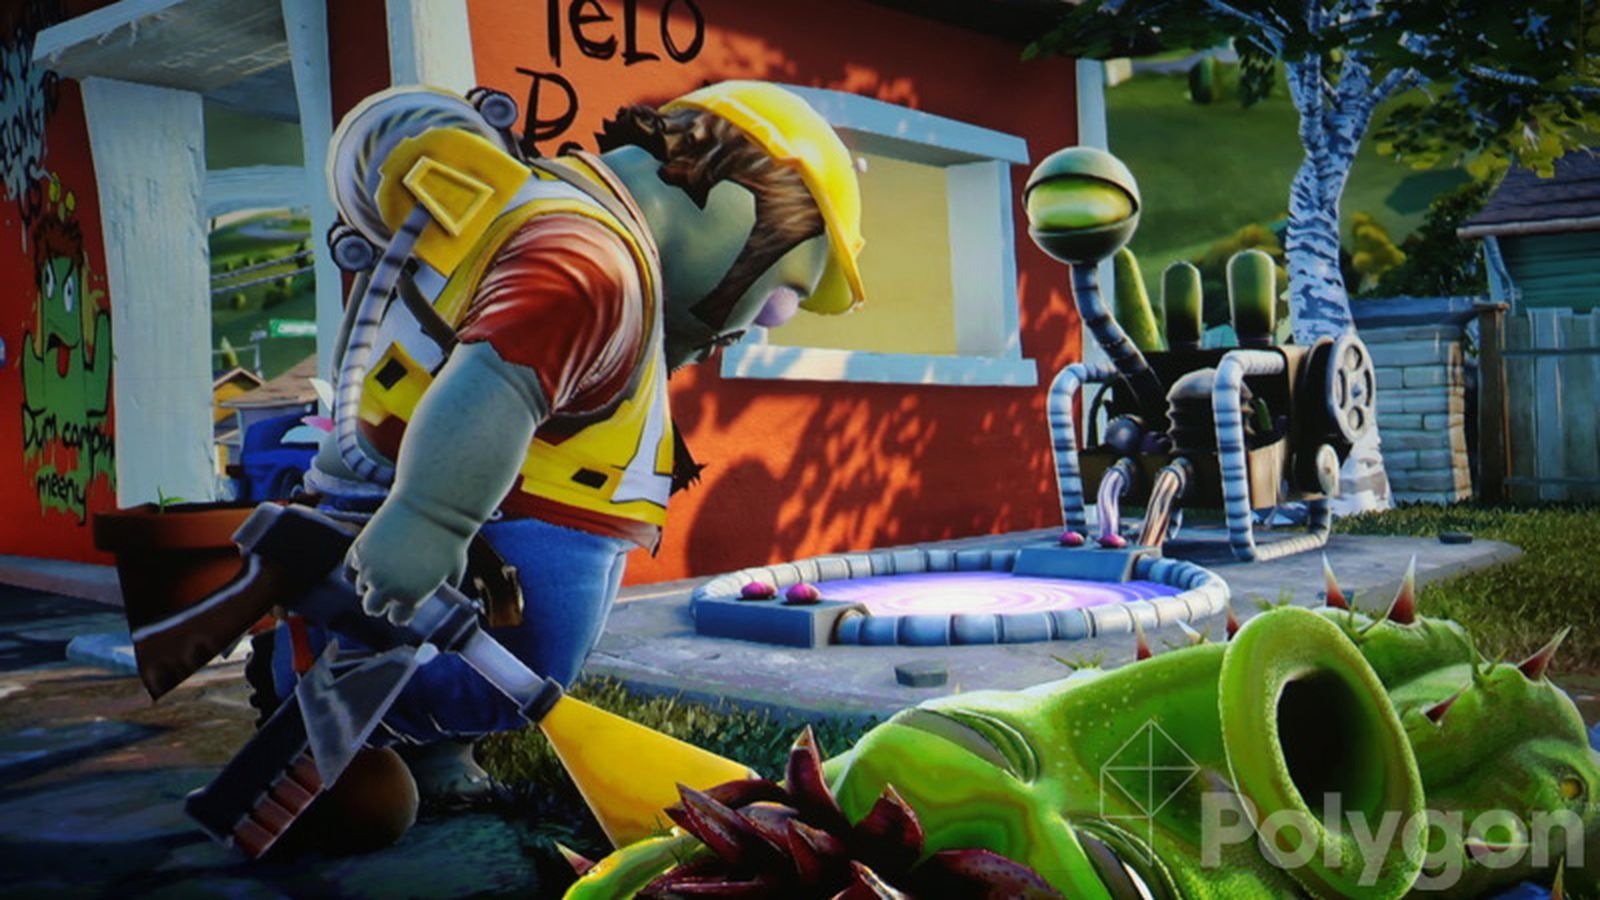 Plants Vs Zombies Garden Warfare Includes Playable Zombies New Boss Mode Polygon